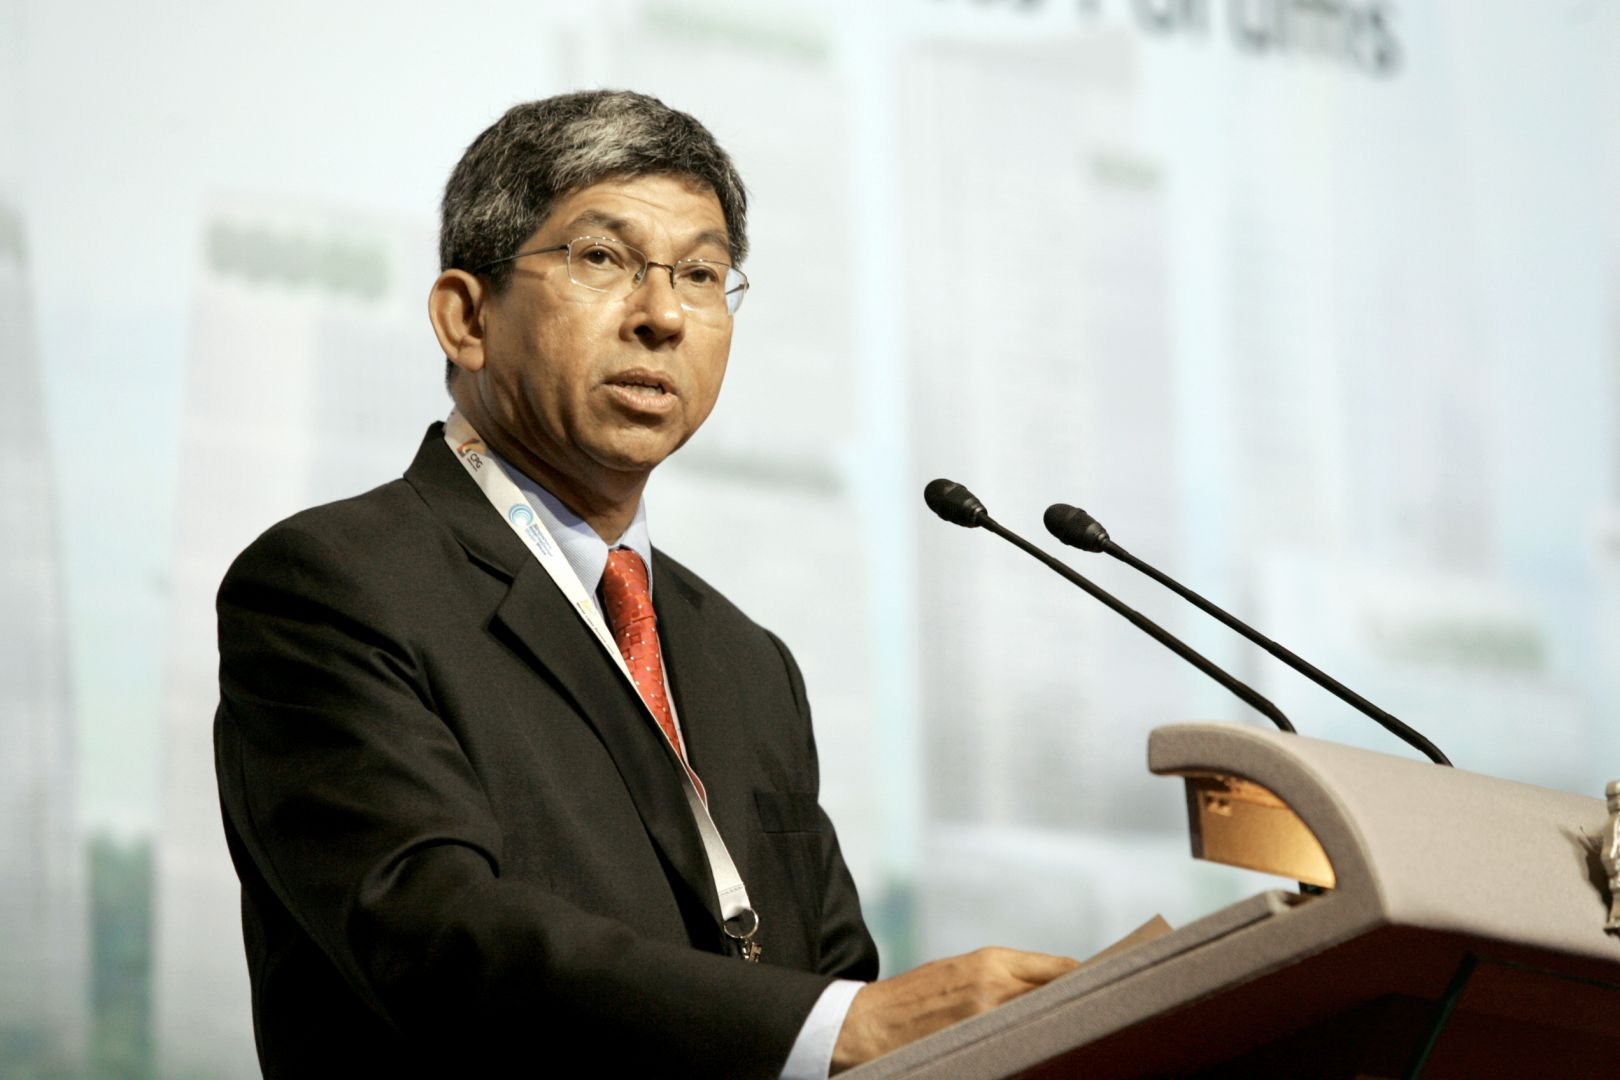 Yaacob Ibrahim, Minister for Communications and Information of Singapore.